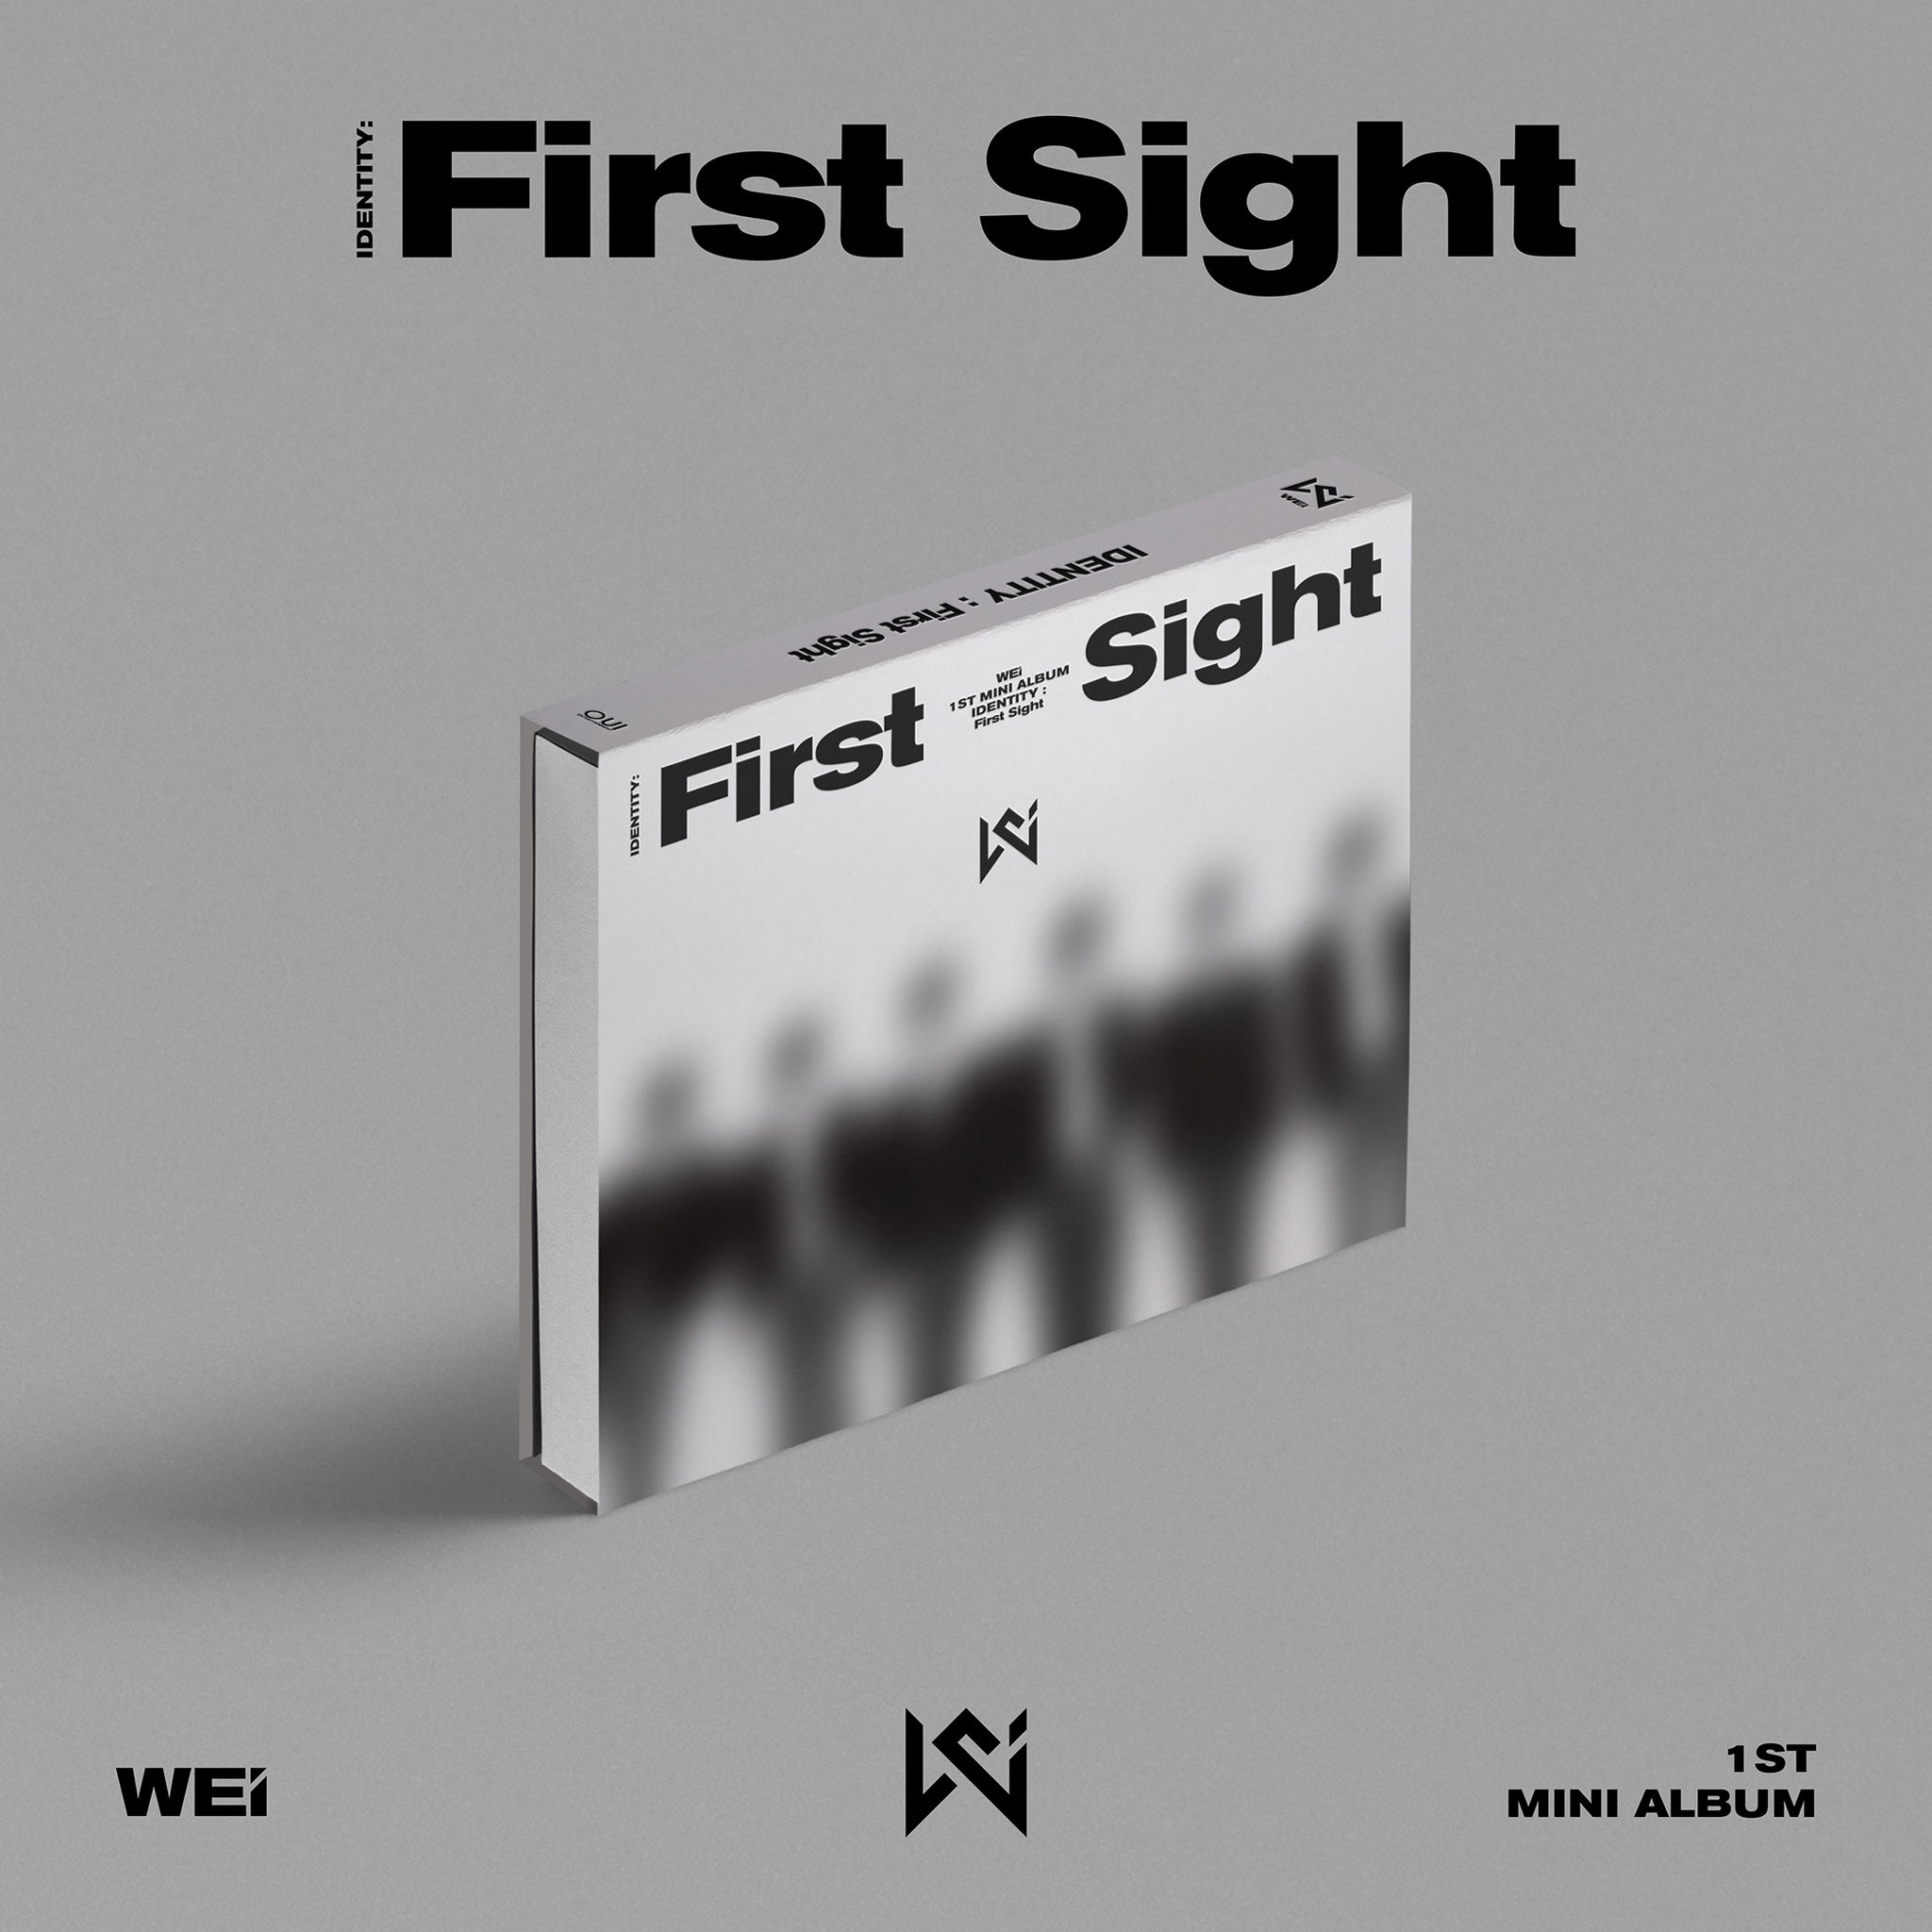 WEi 1ST MINI ALBUM 'IDENTITY : FIRST SIGHT'